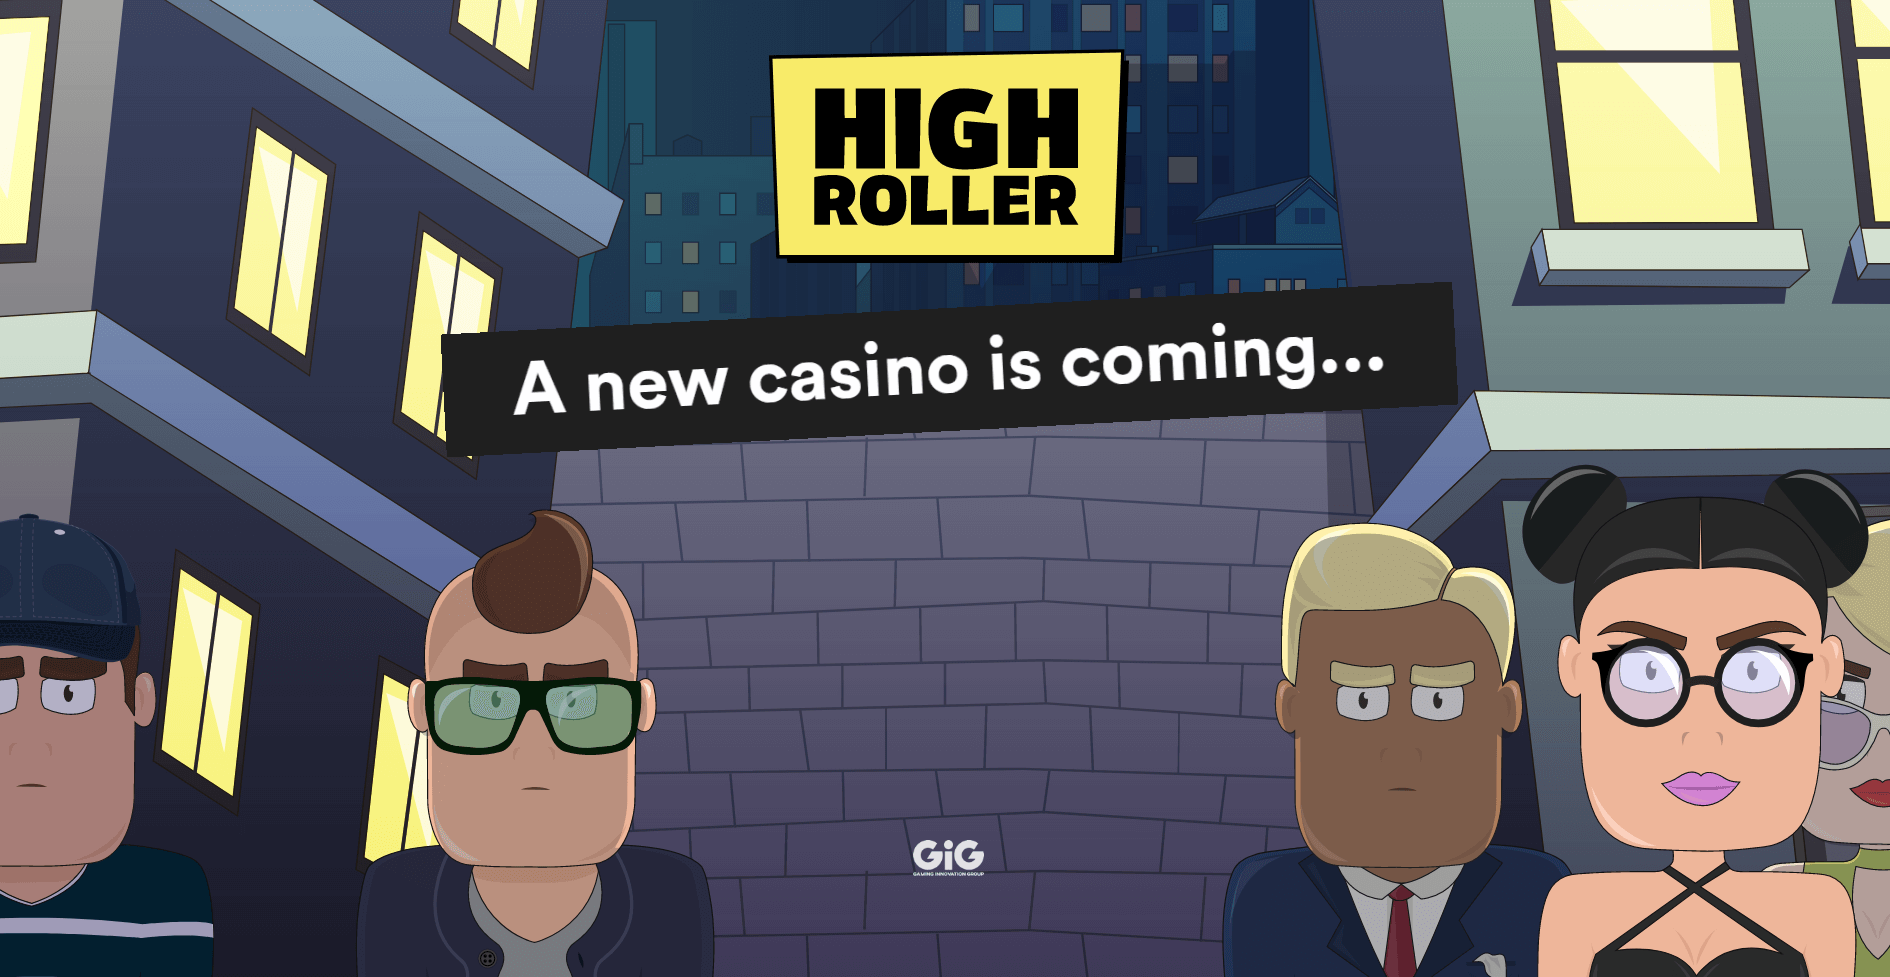 An image of the High Roller Casino Image